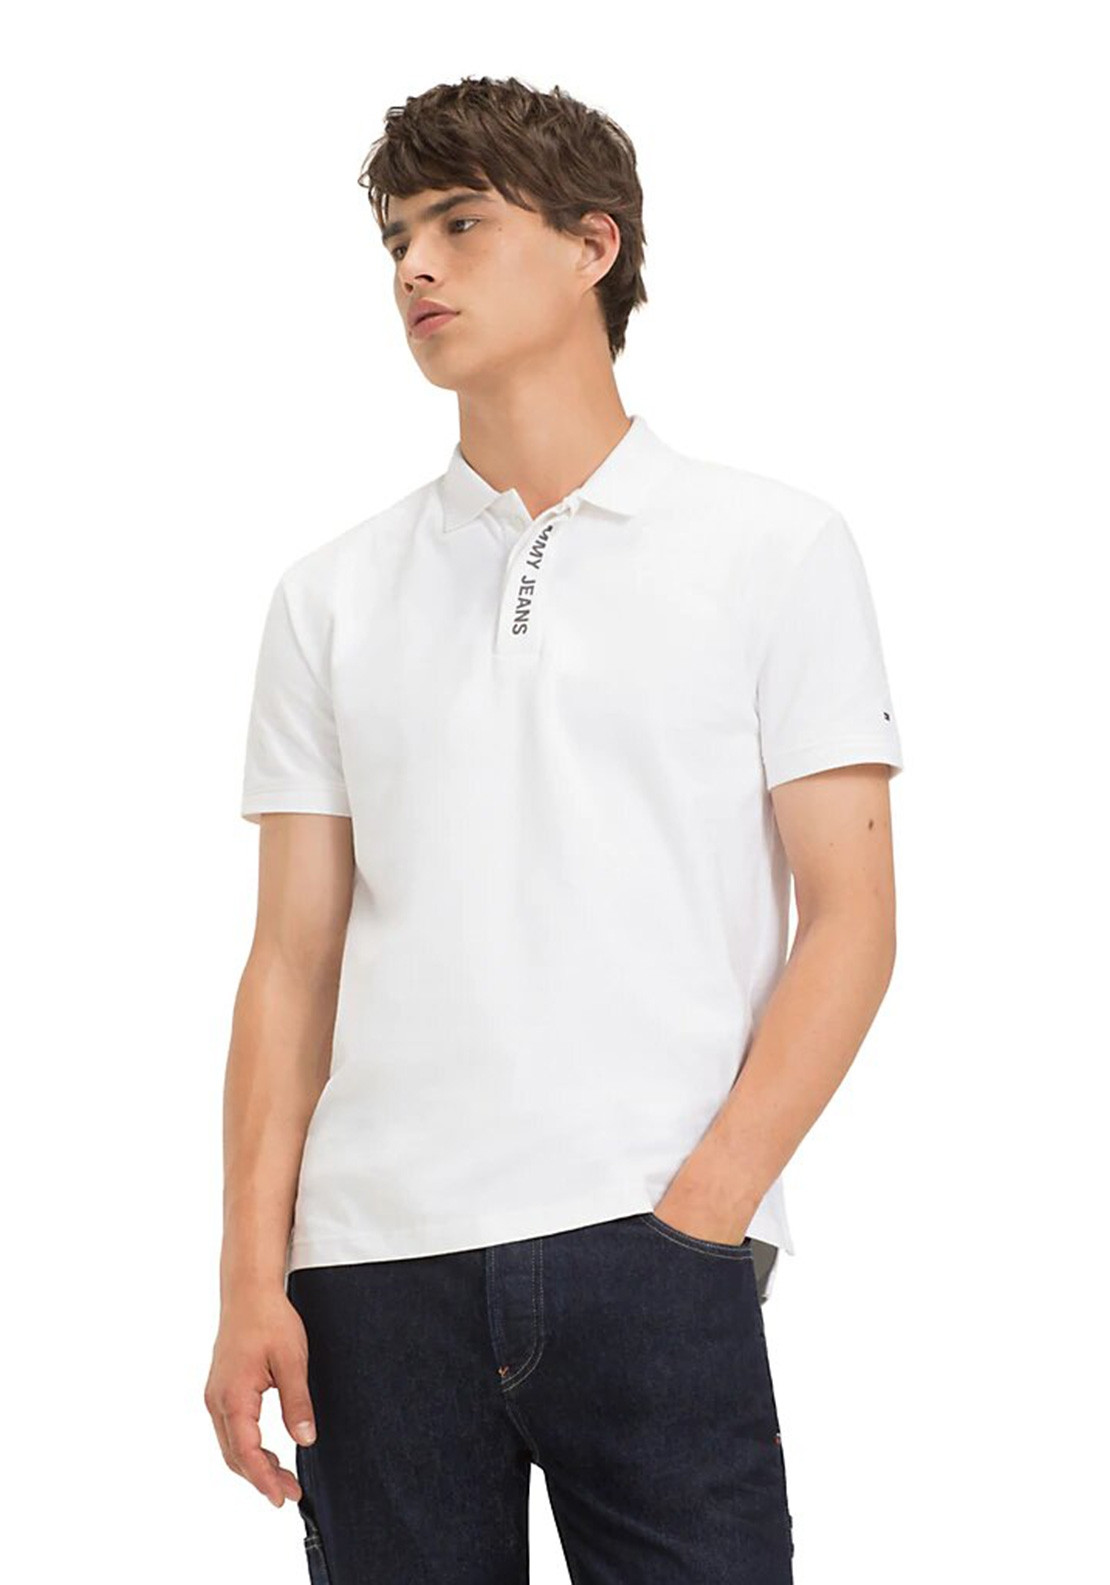 b49bfff9 Tommy Jeans Men's Placket Polo, White. Be the first to review this product